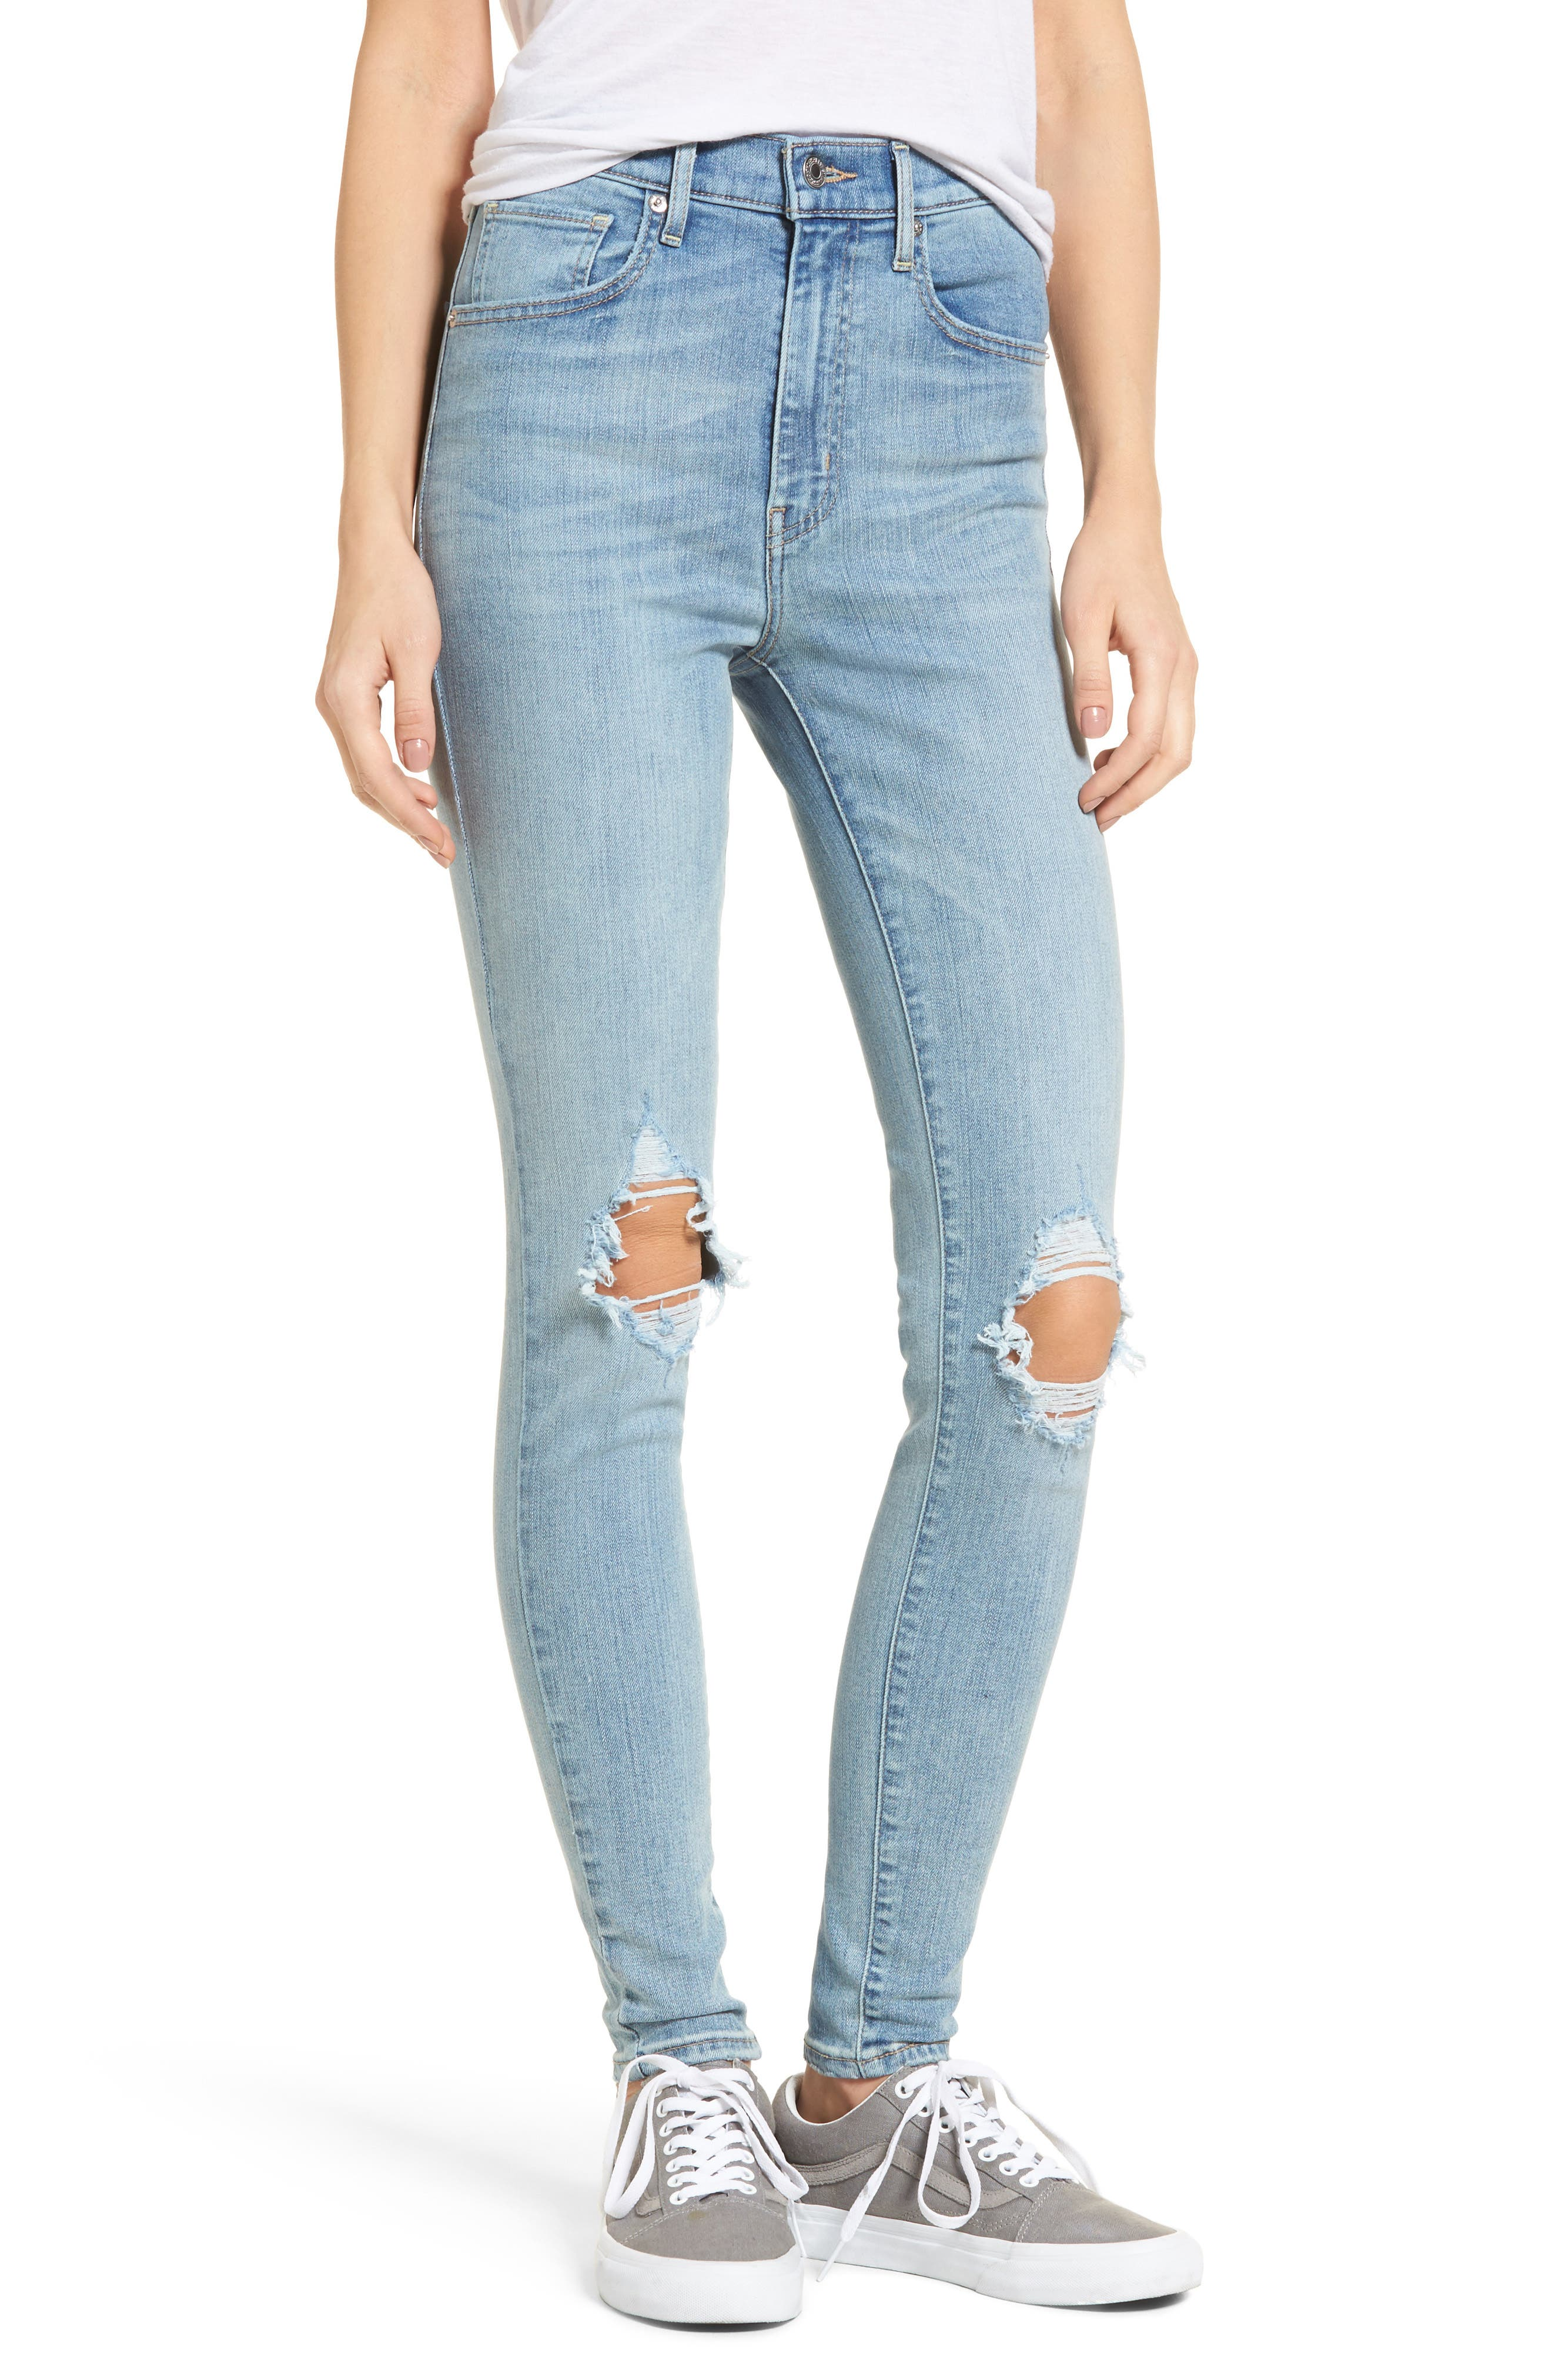 Levi's® Mile High Super Skinny Jeans. New Markdown